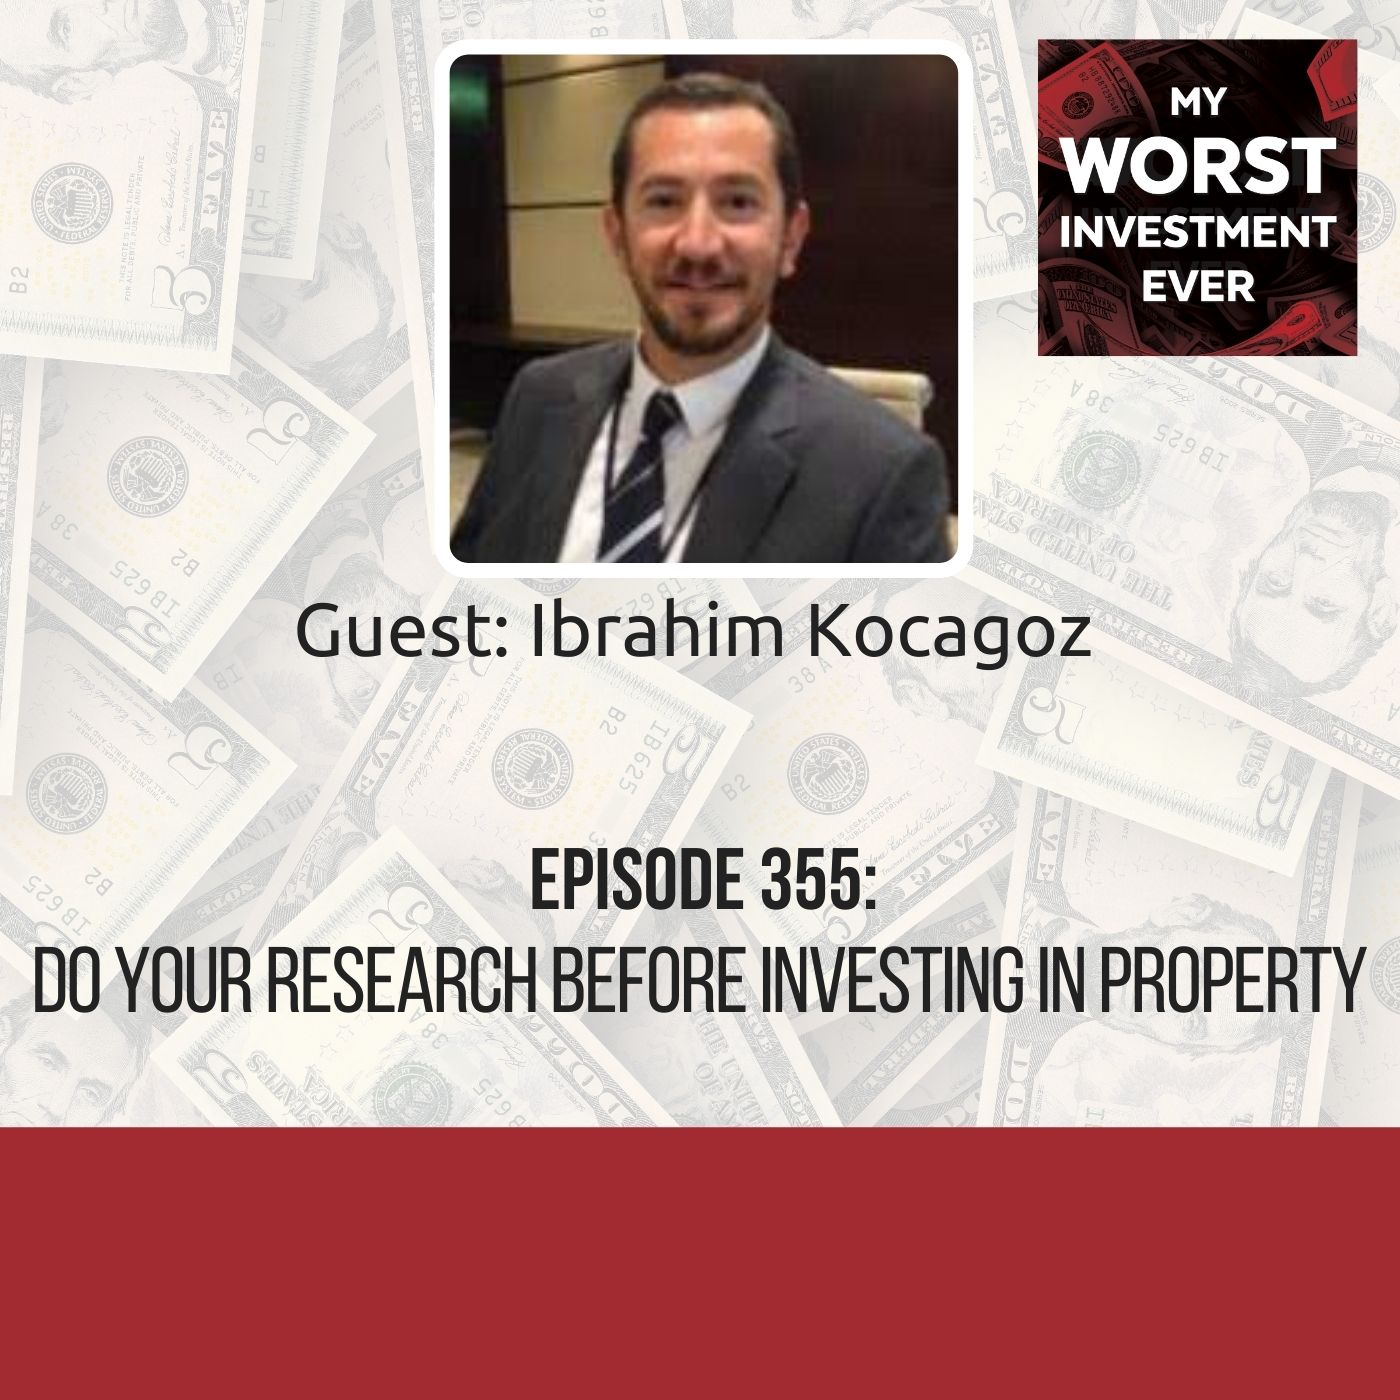 Ibrahim Kocagoz – Do Your Research Before Investing in Property